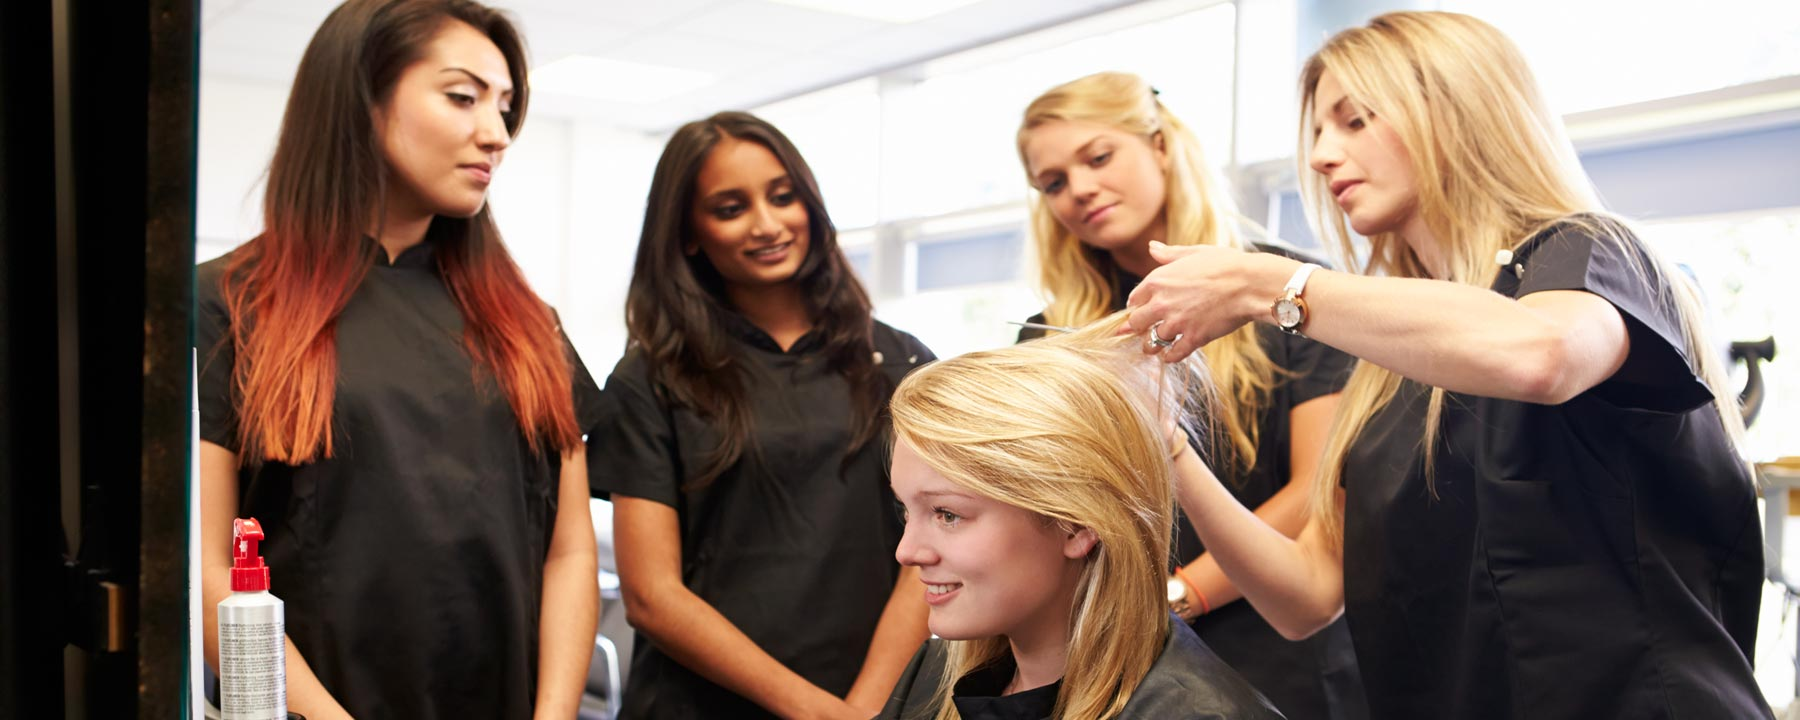 London skills for growth apprenticeships hairdressing